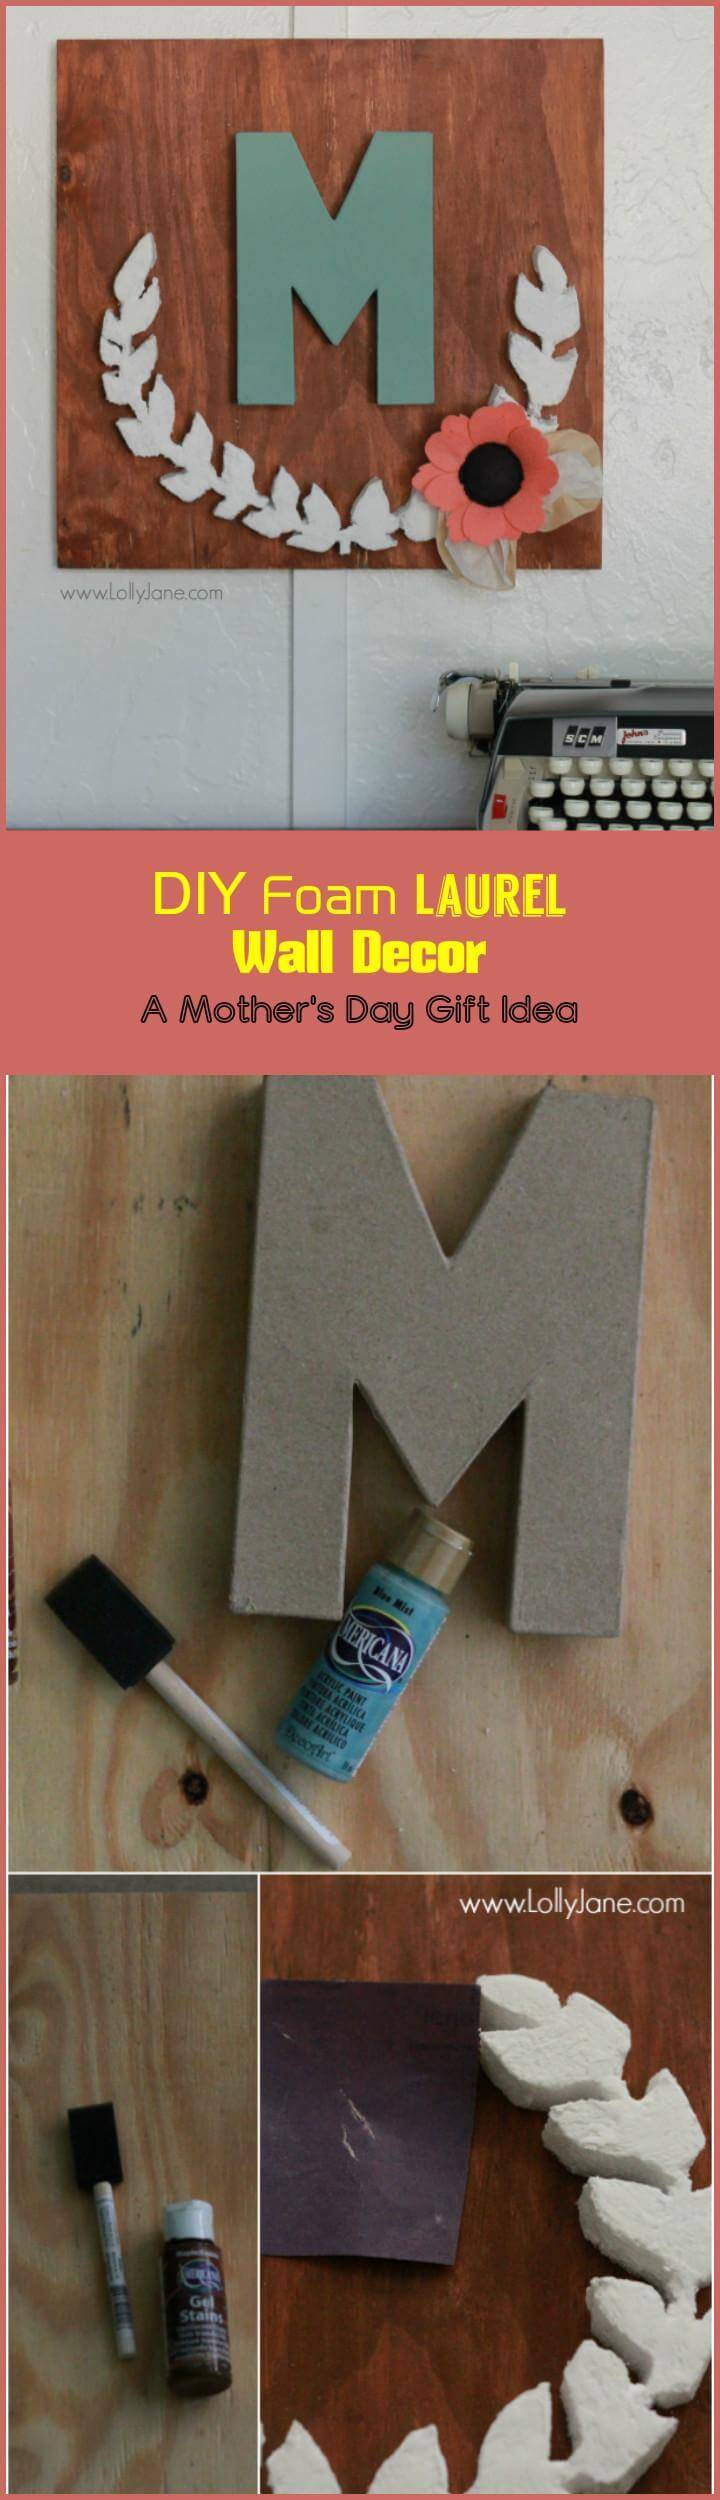 DIY foam laurel wall decor